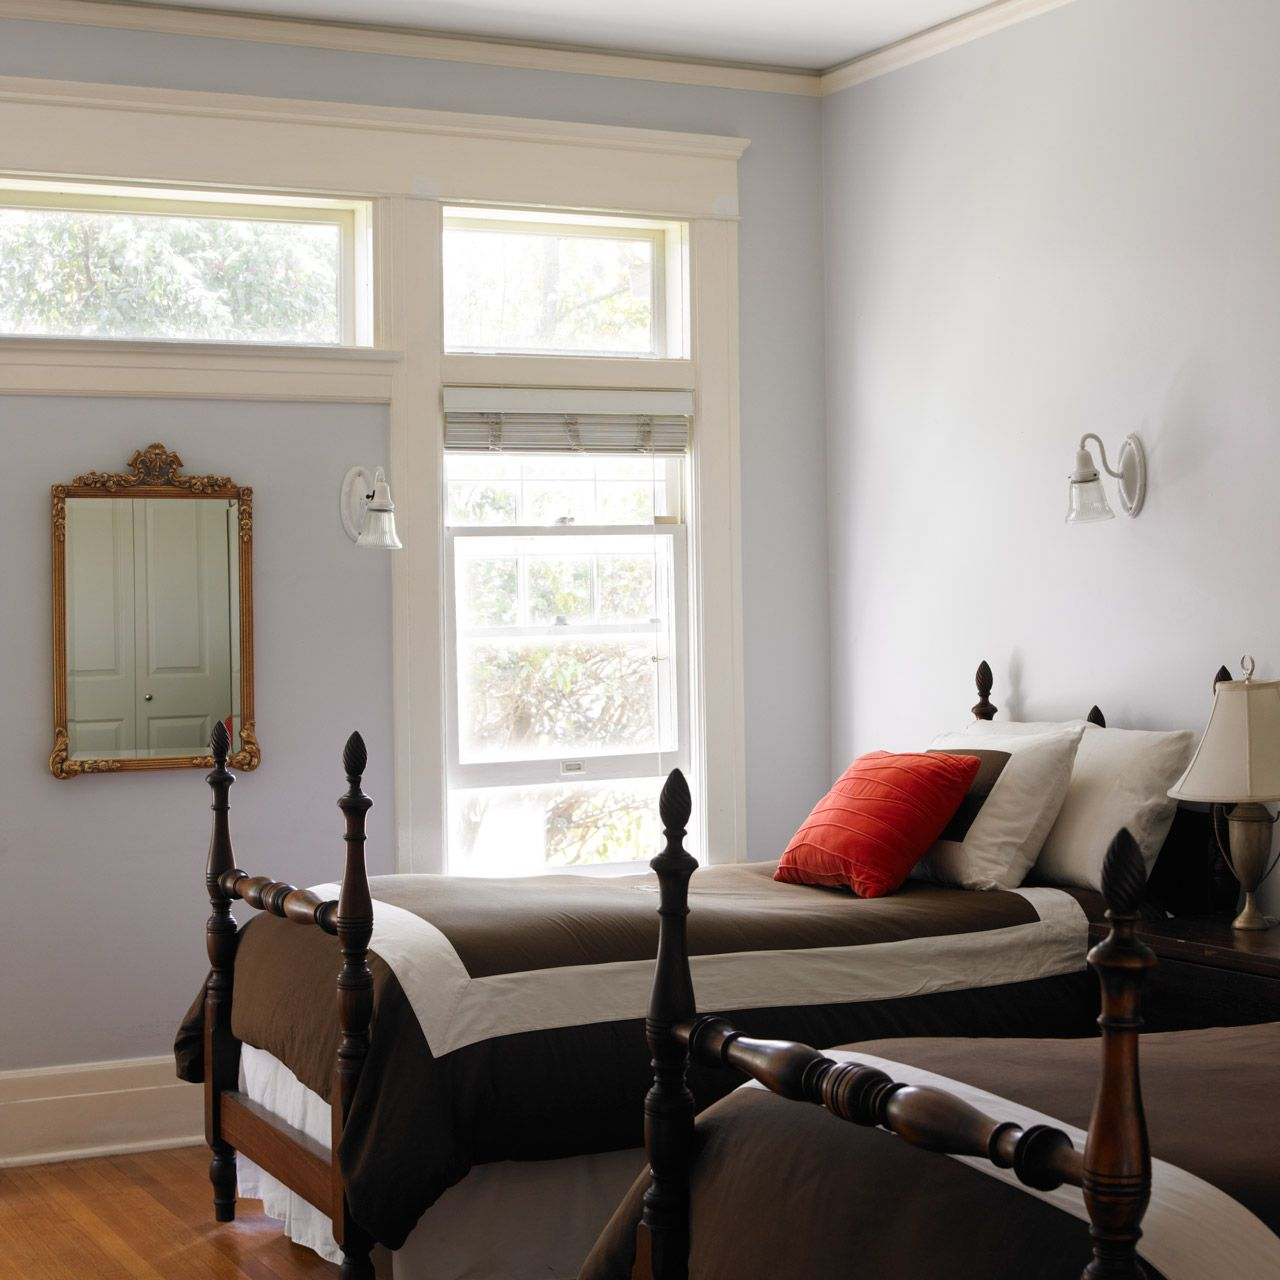 Dunn-Edwards Paints paint colors: Walls: Cold Wind DE6351; Trim: White